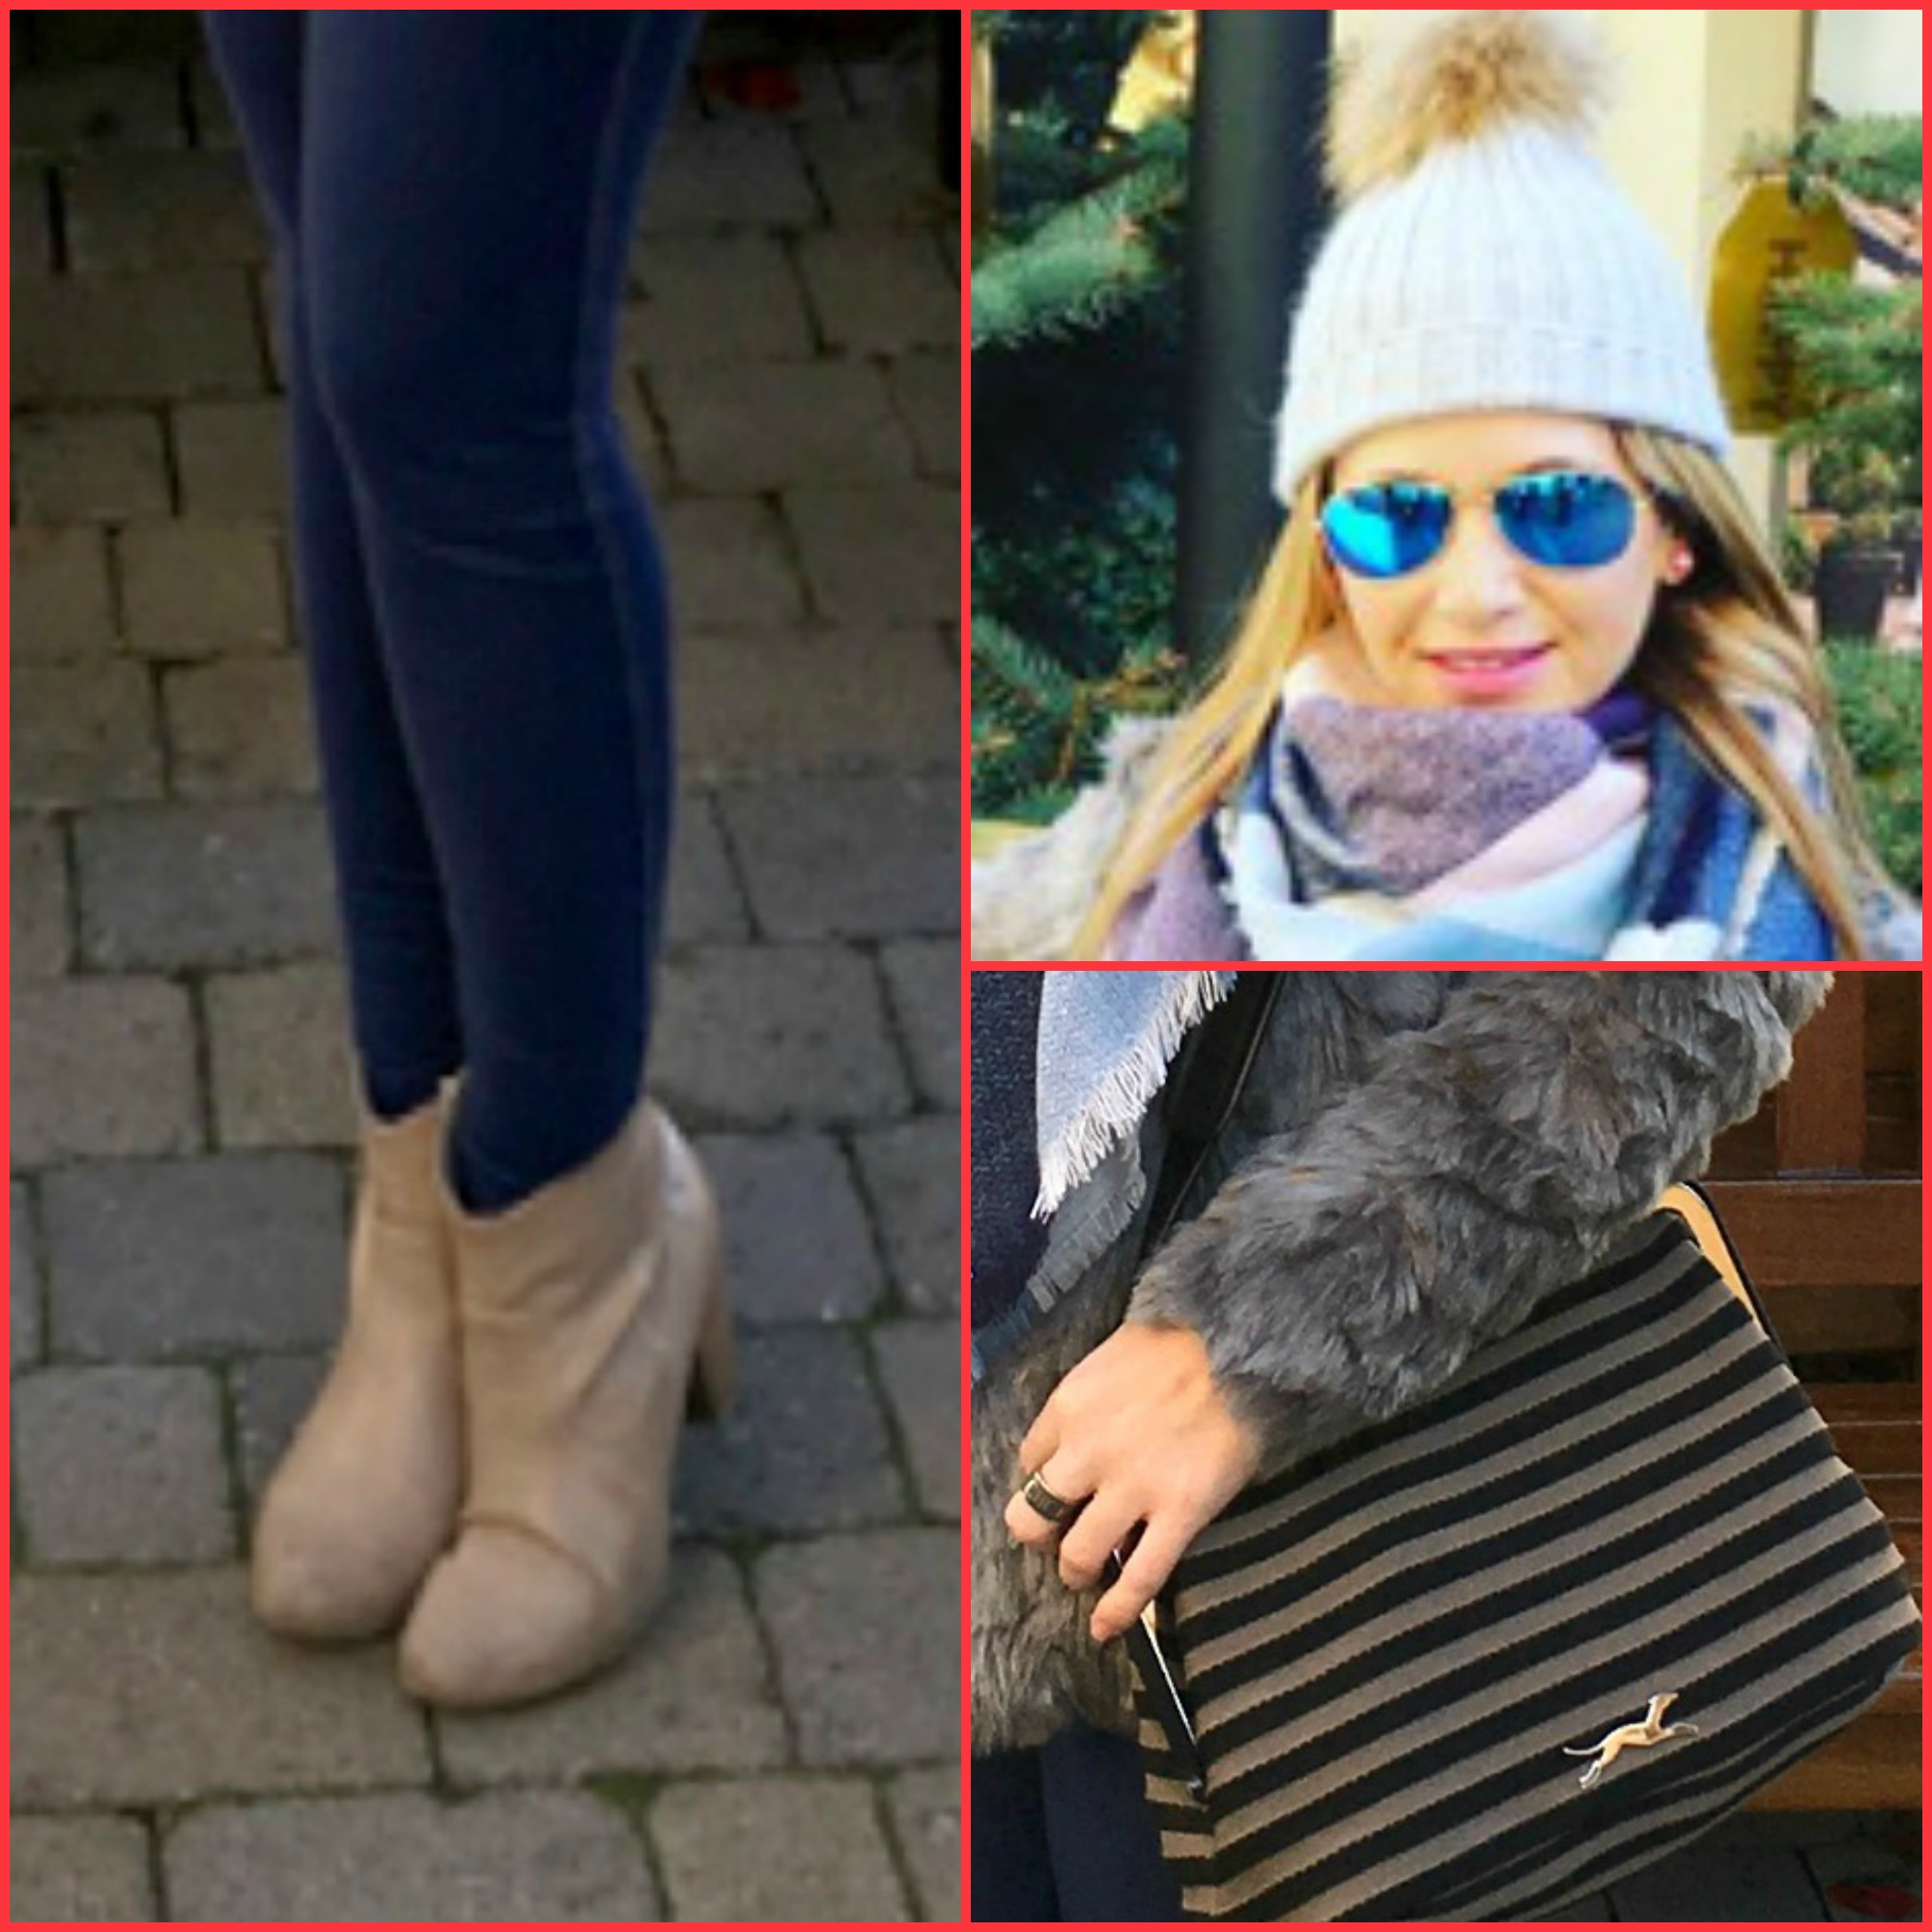 Pants: SUPER SLIM FIT MAMA H&M; Booties: S-OLIVER; Coat: FOREVER 21; Ring: CAROLINA HERRERA; Scarf: STRADIVARIUS (fall/winter 2016-2017); Sunglasses: RAY-BAN; Handbag: BIMBA  Y LOLA;